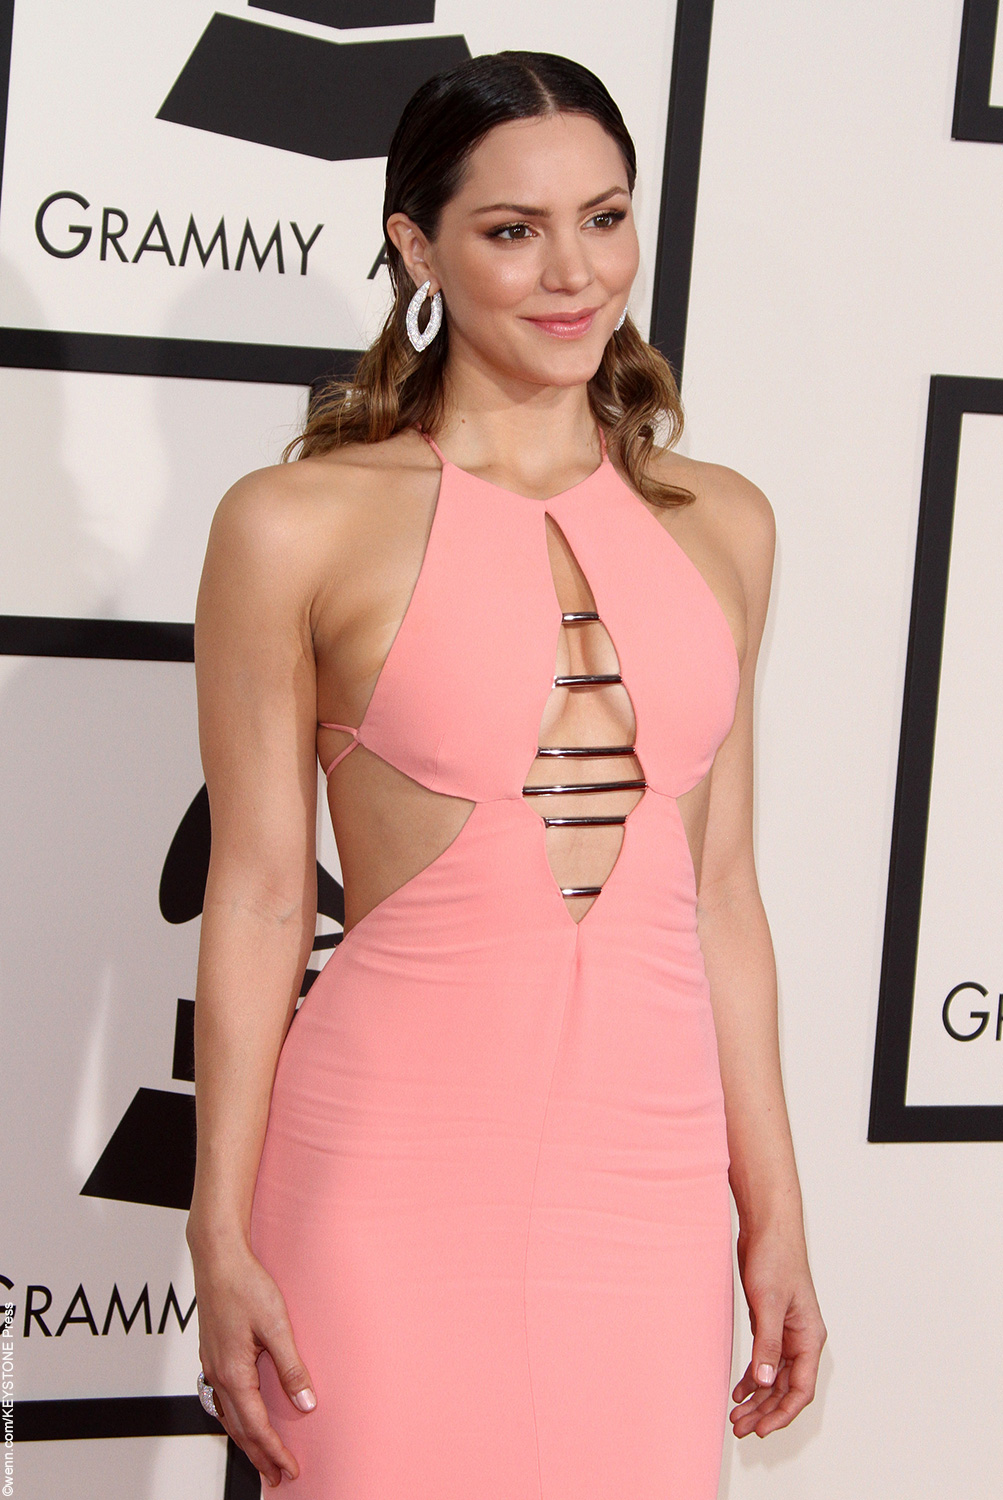 Although she didn't wind up as a successful recording artist despite her amazing vocals, Katharine McPhee has had success on the small screen.The season five runner-up, coming in second to Taylor Hicks (Taylor has since starred on Broadway inGrease), Katharine starred in the musical TV seriesSmash. Unfortunately, Katharine, married to Nick Cokas in 2008, attracted […]